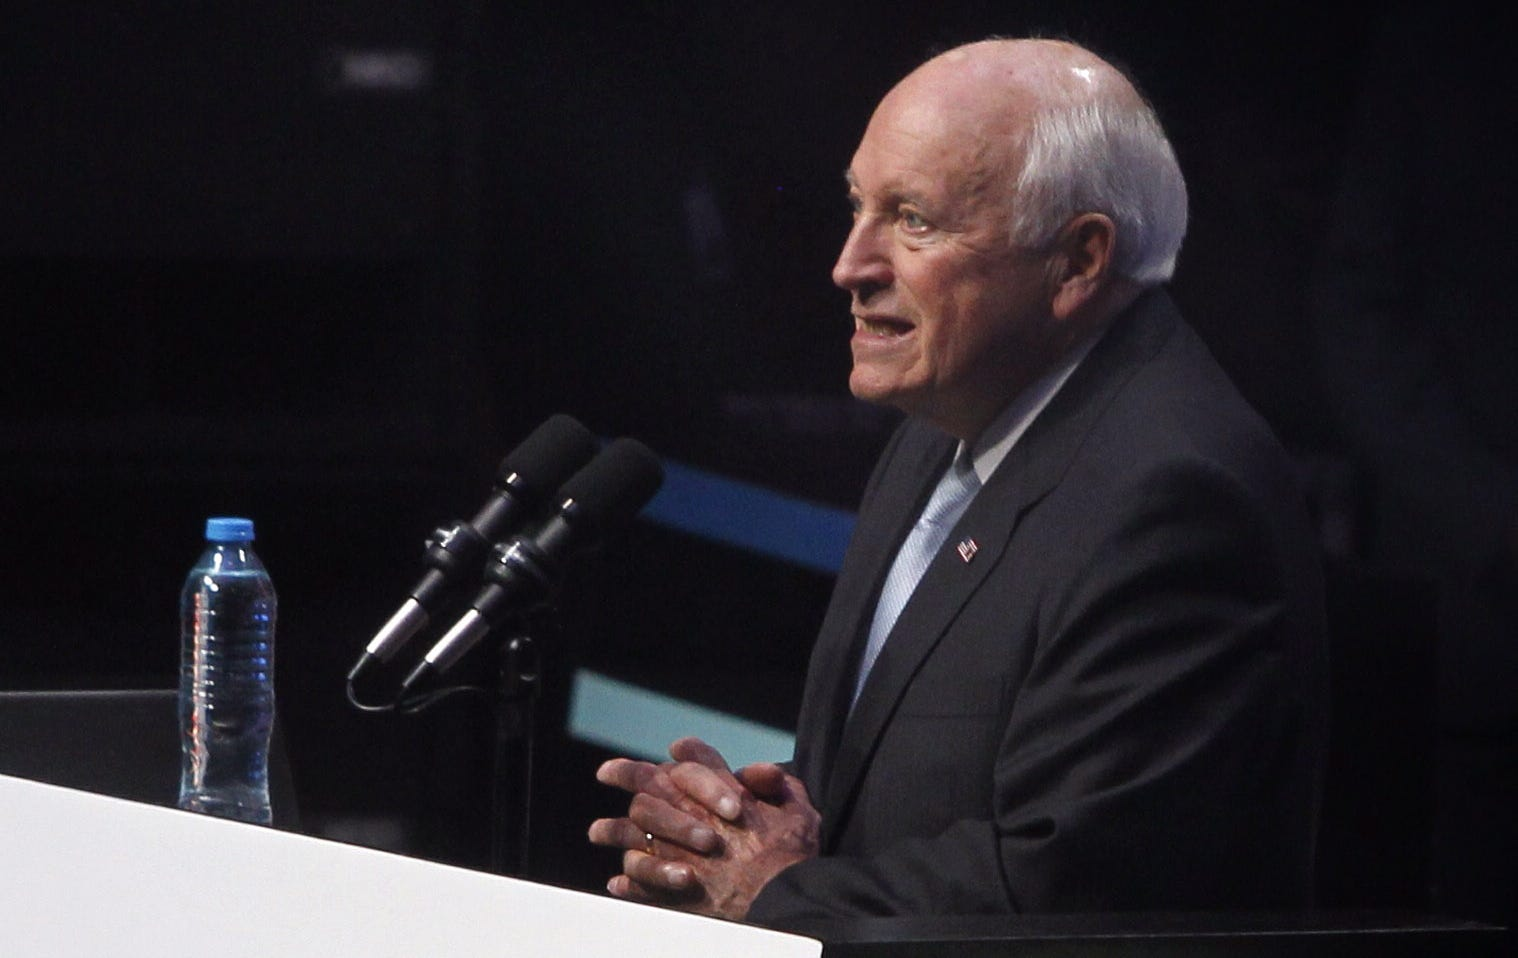 Former Vice President Dick Cheney speaks at the National Auditorium in Mexico City on September 7, 2018, during the event